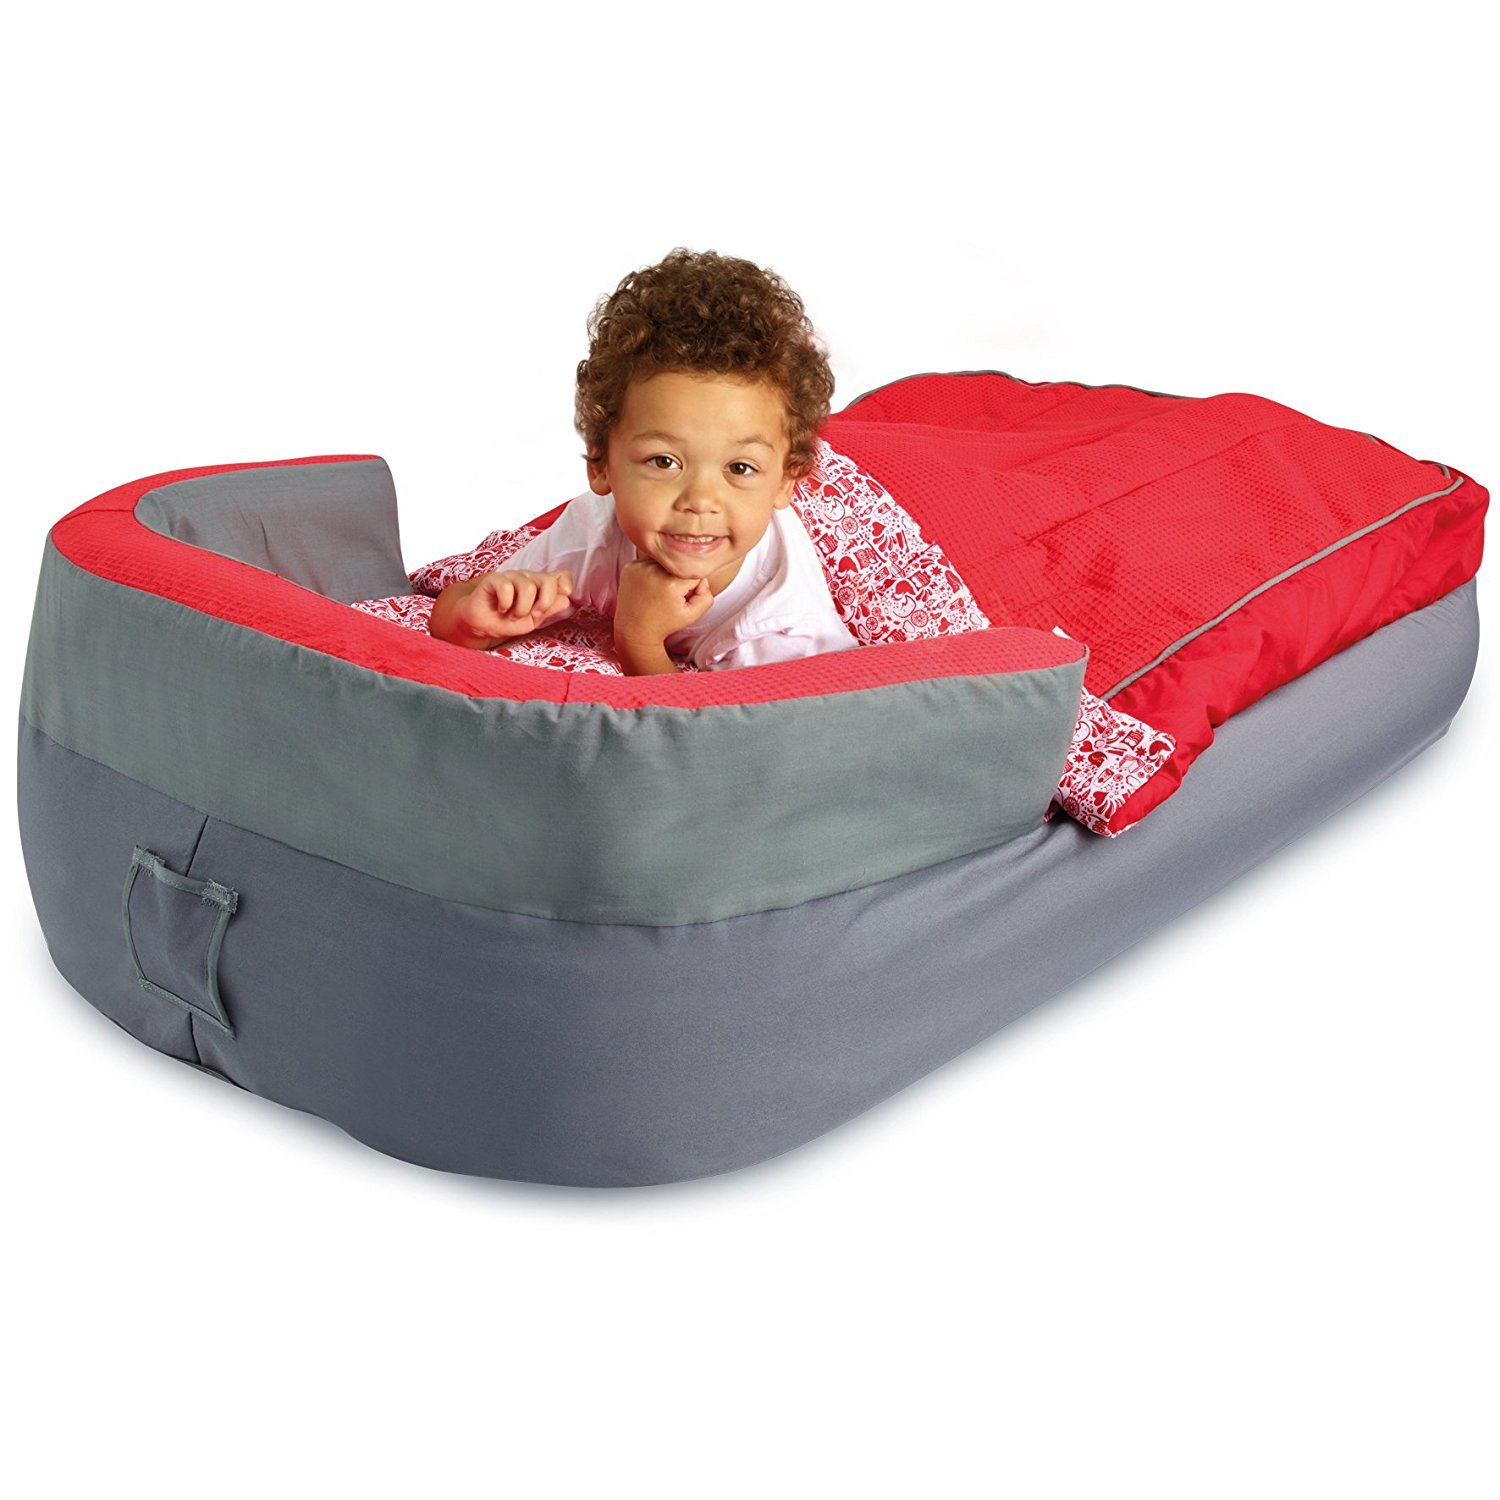 My First ReadyBed, Deluxe by Worlds Apart, Ages 18 months - 3 years by Readybed (Image #3)